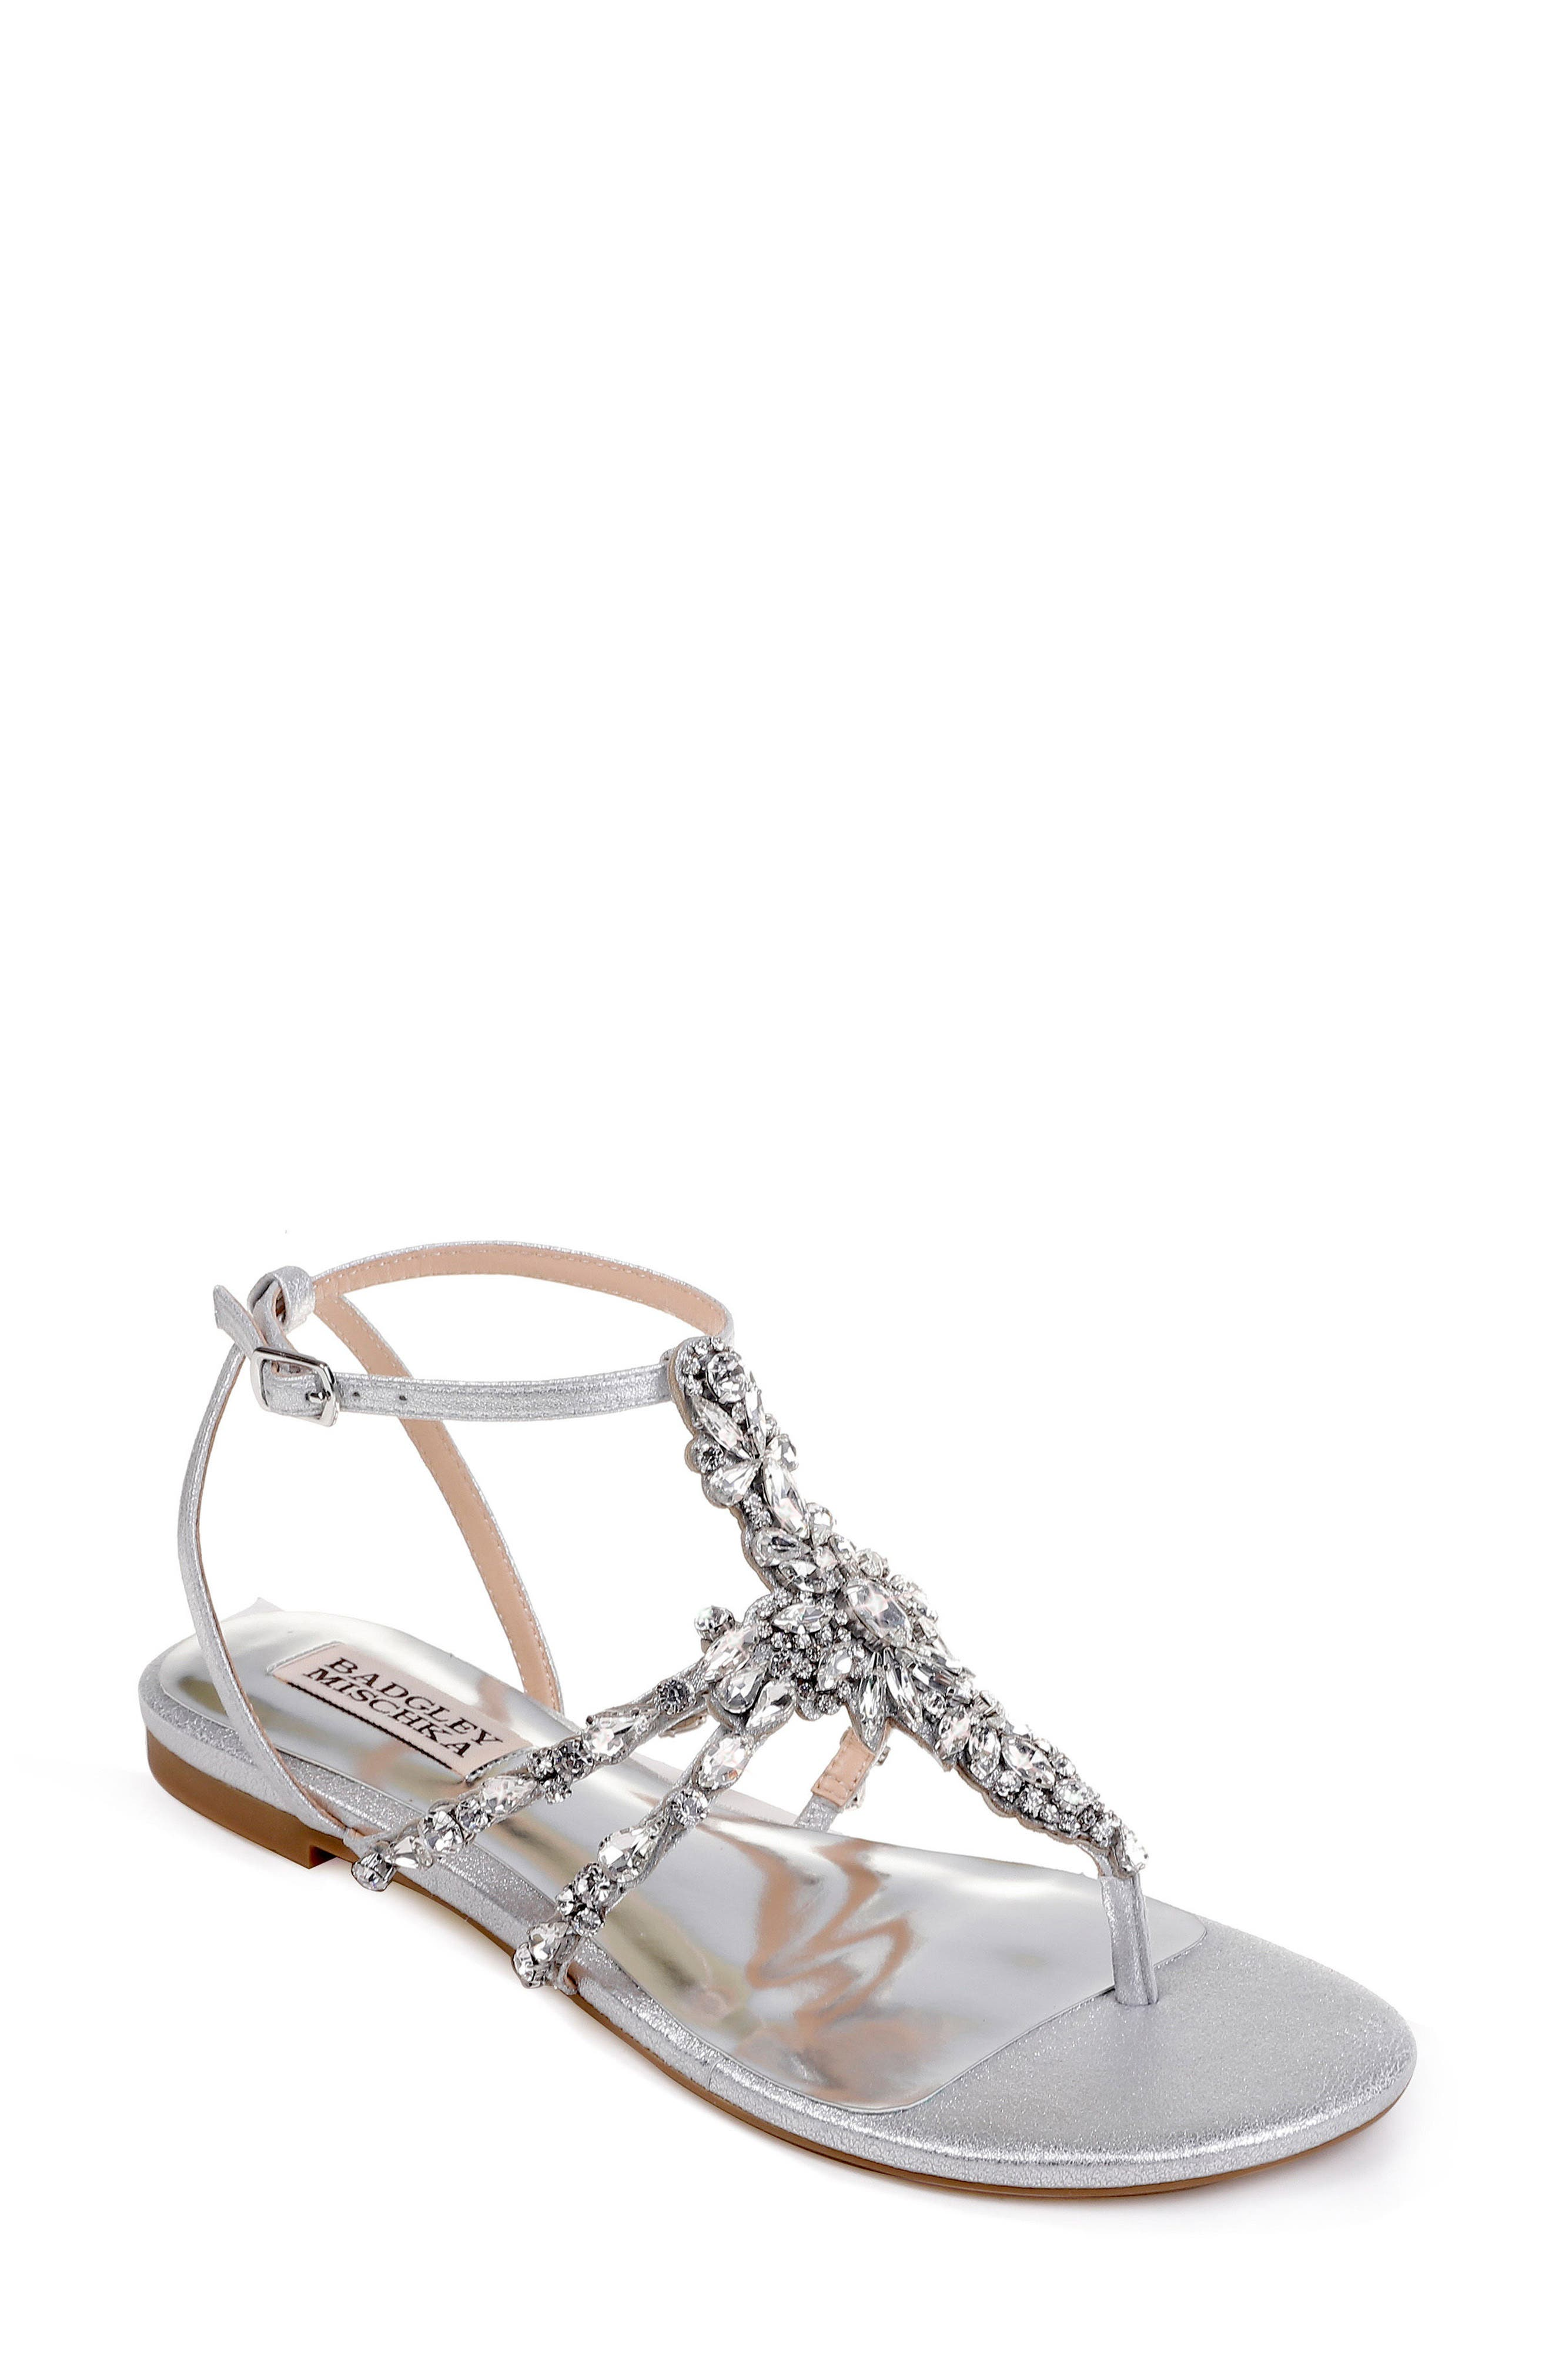 Badgley Mischka Hampden Crystal Embellished Sandal- Metallic